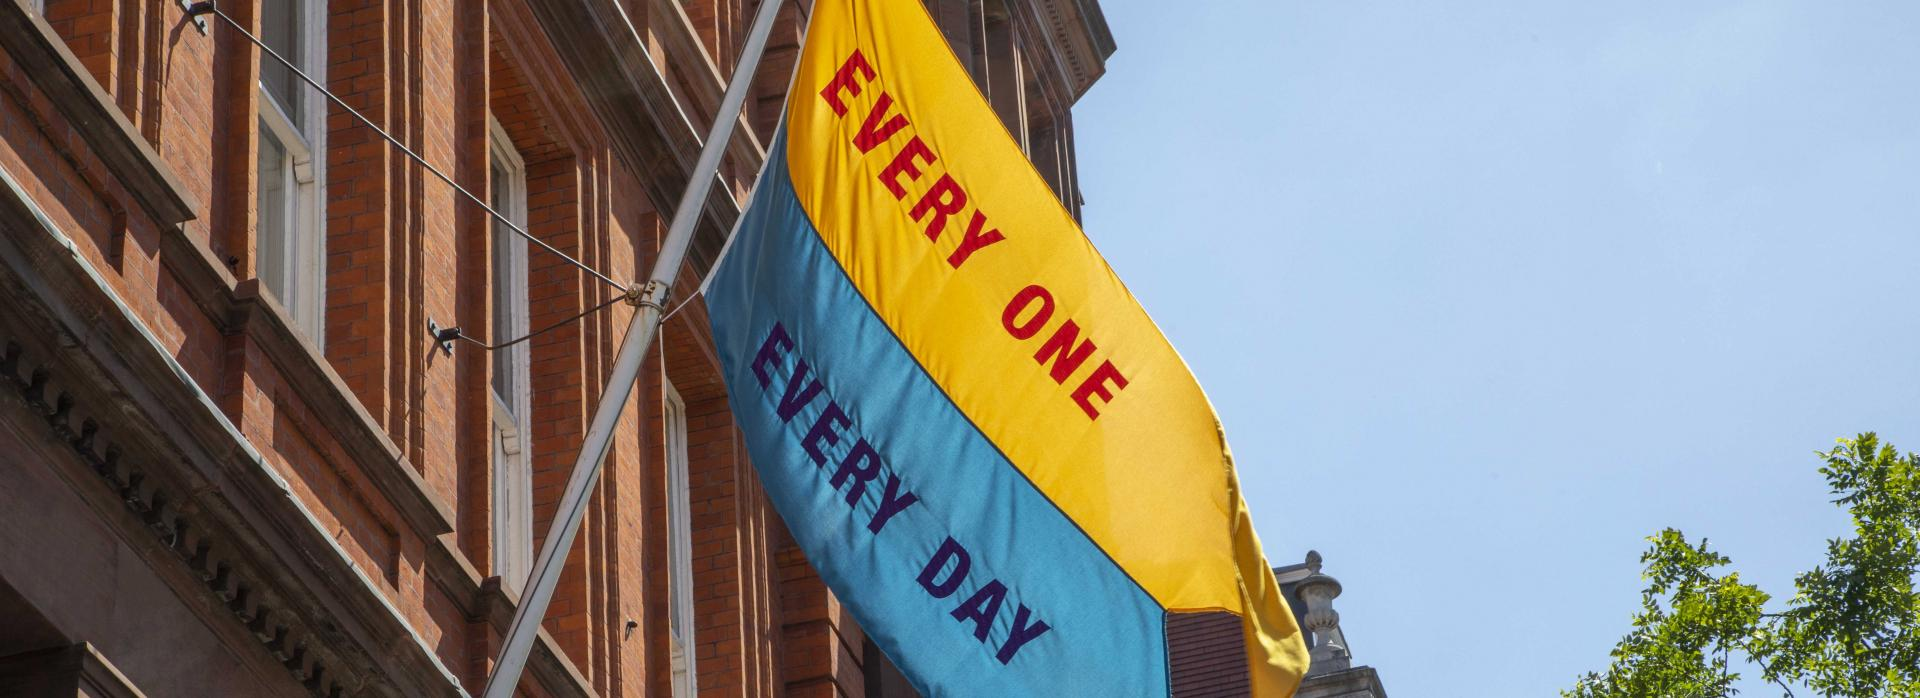 A Flag for Every One, from the Good Hope Works project at Great Ormond Street Hospital